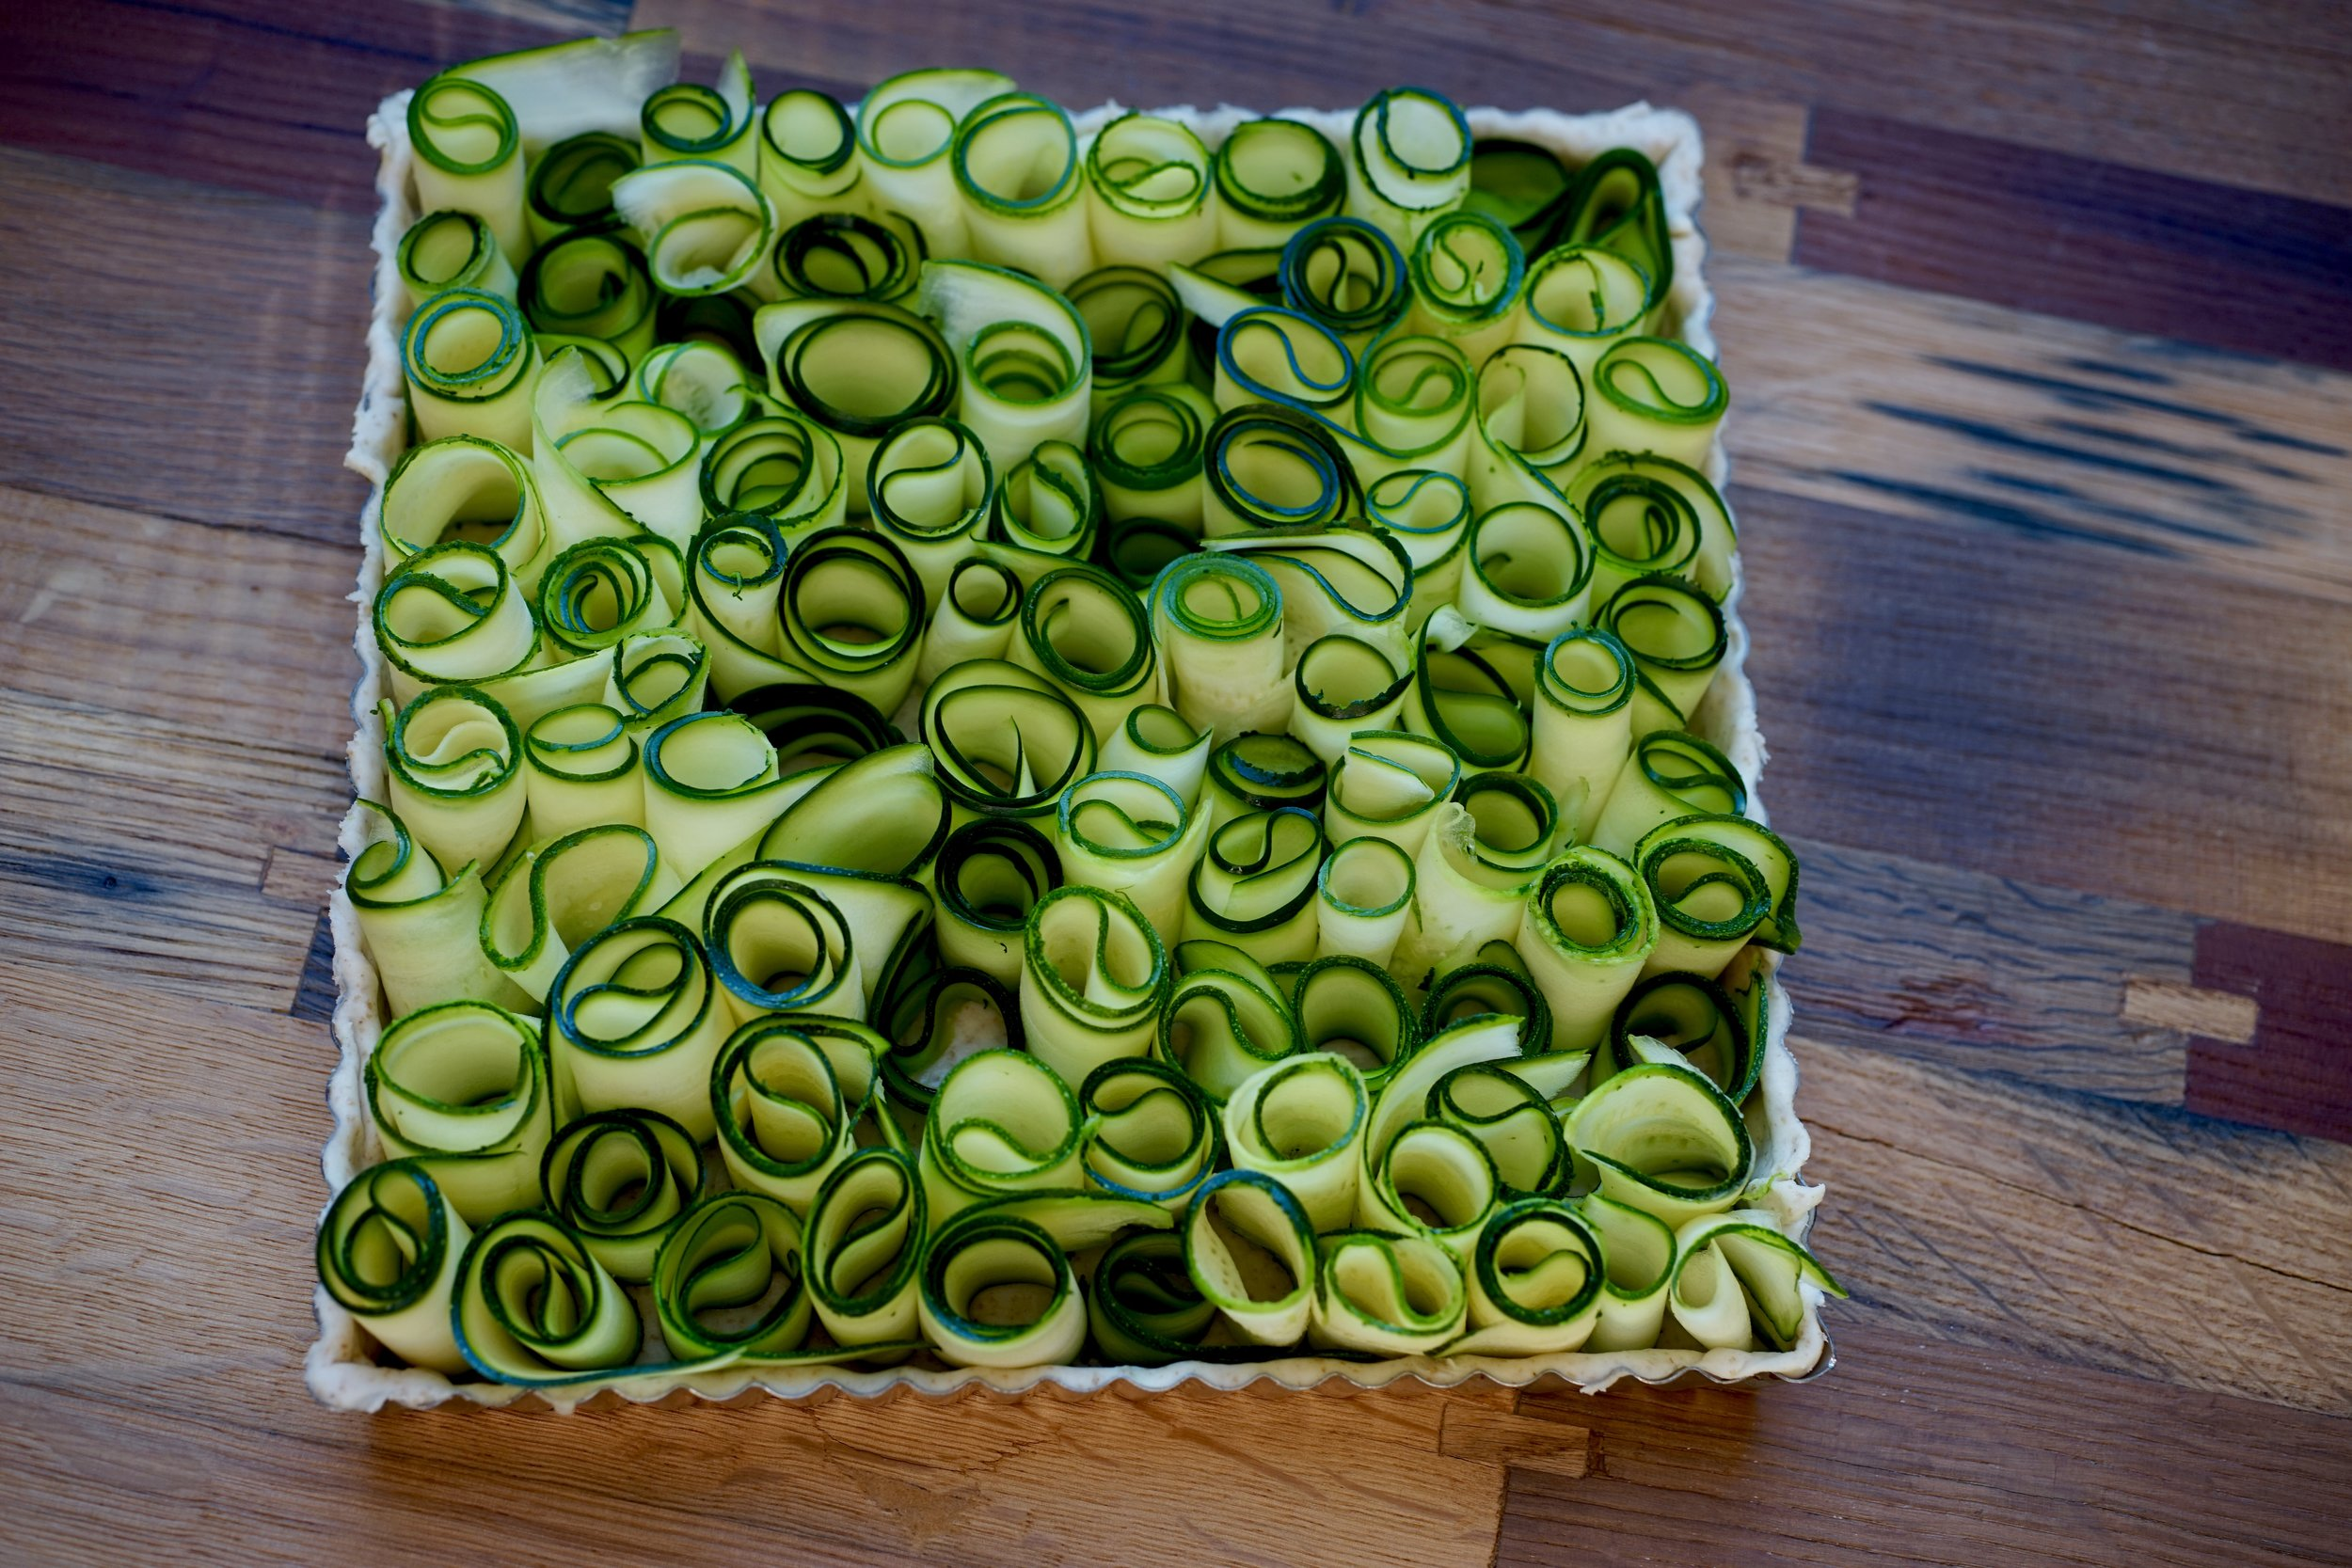 More from Vaud? - Vaudoise Mint and Zucchini Tart